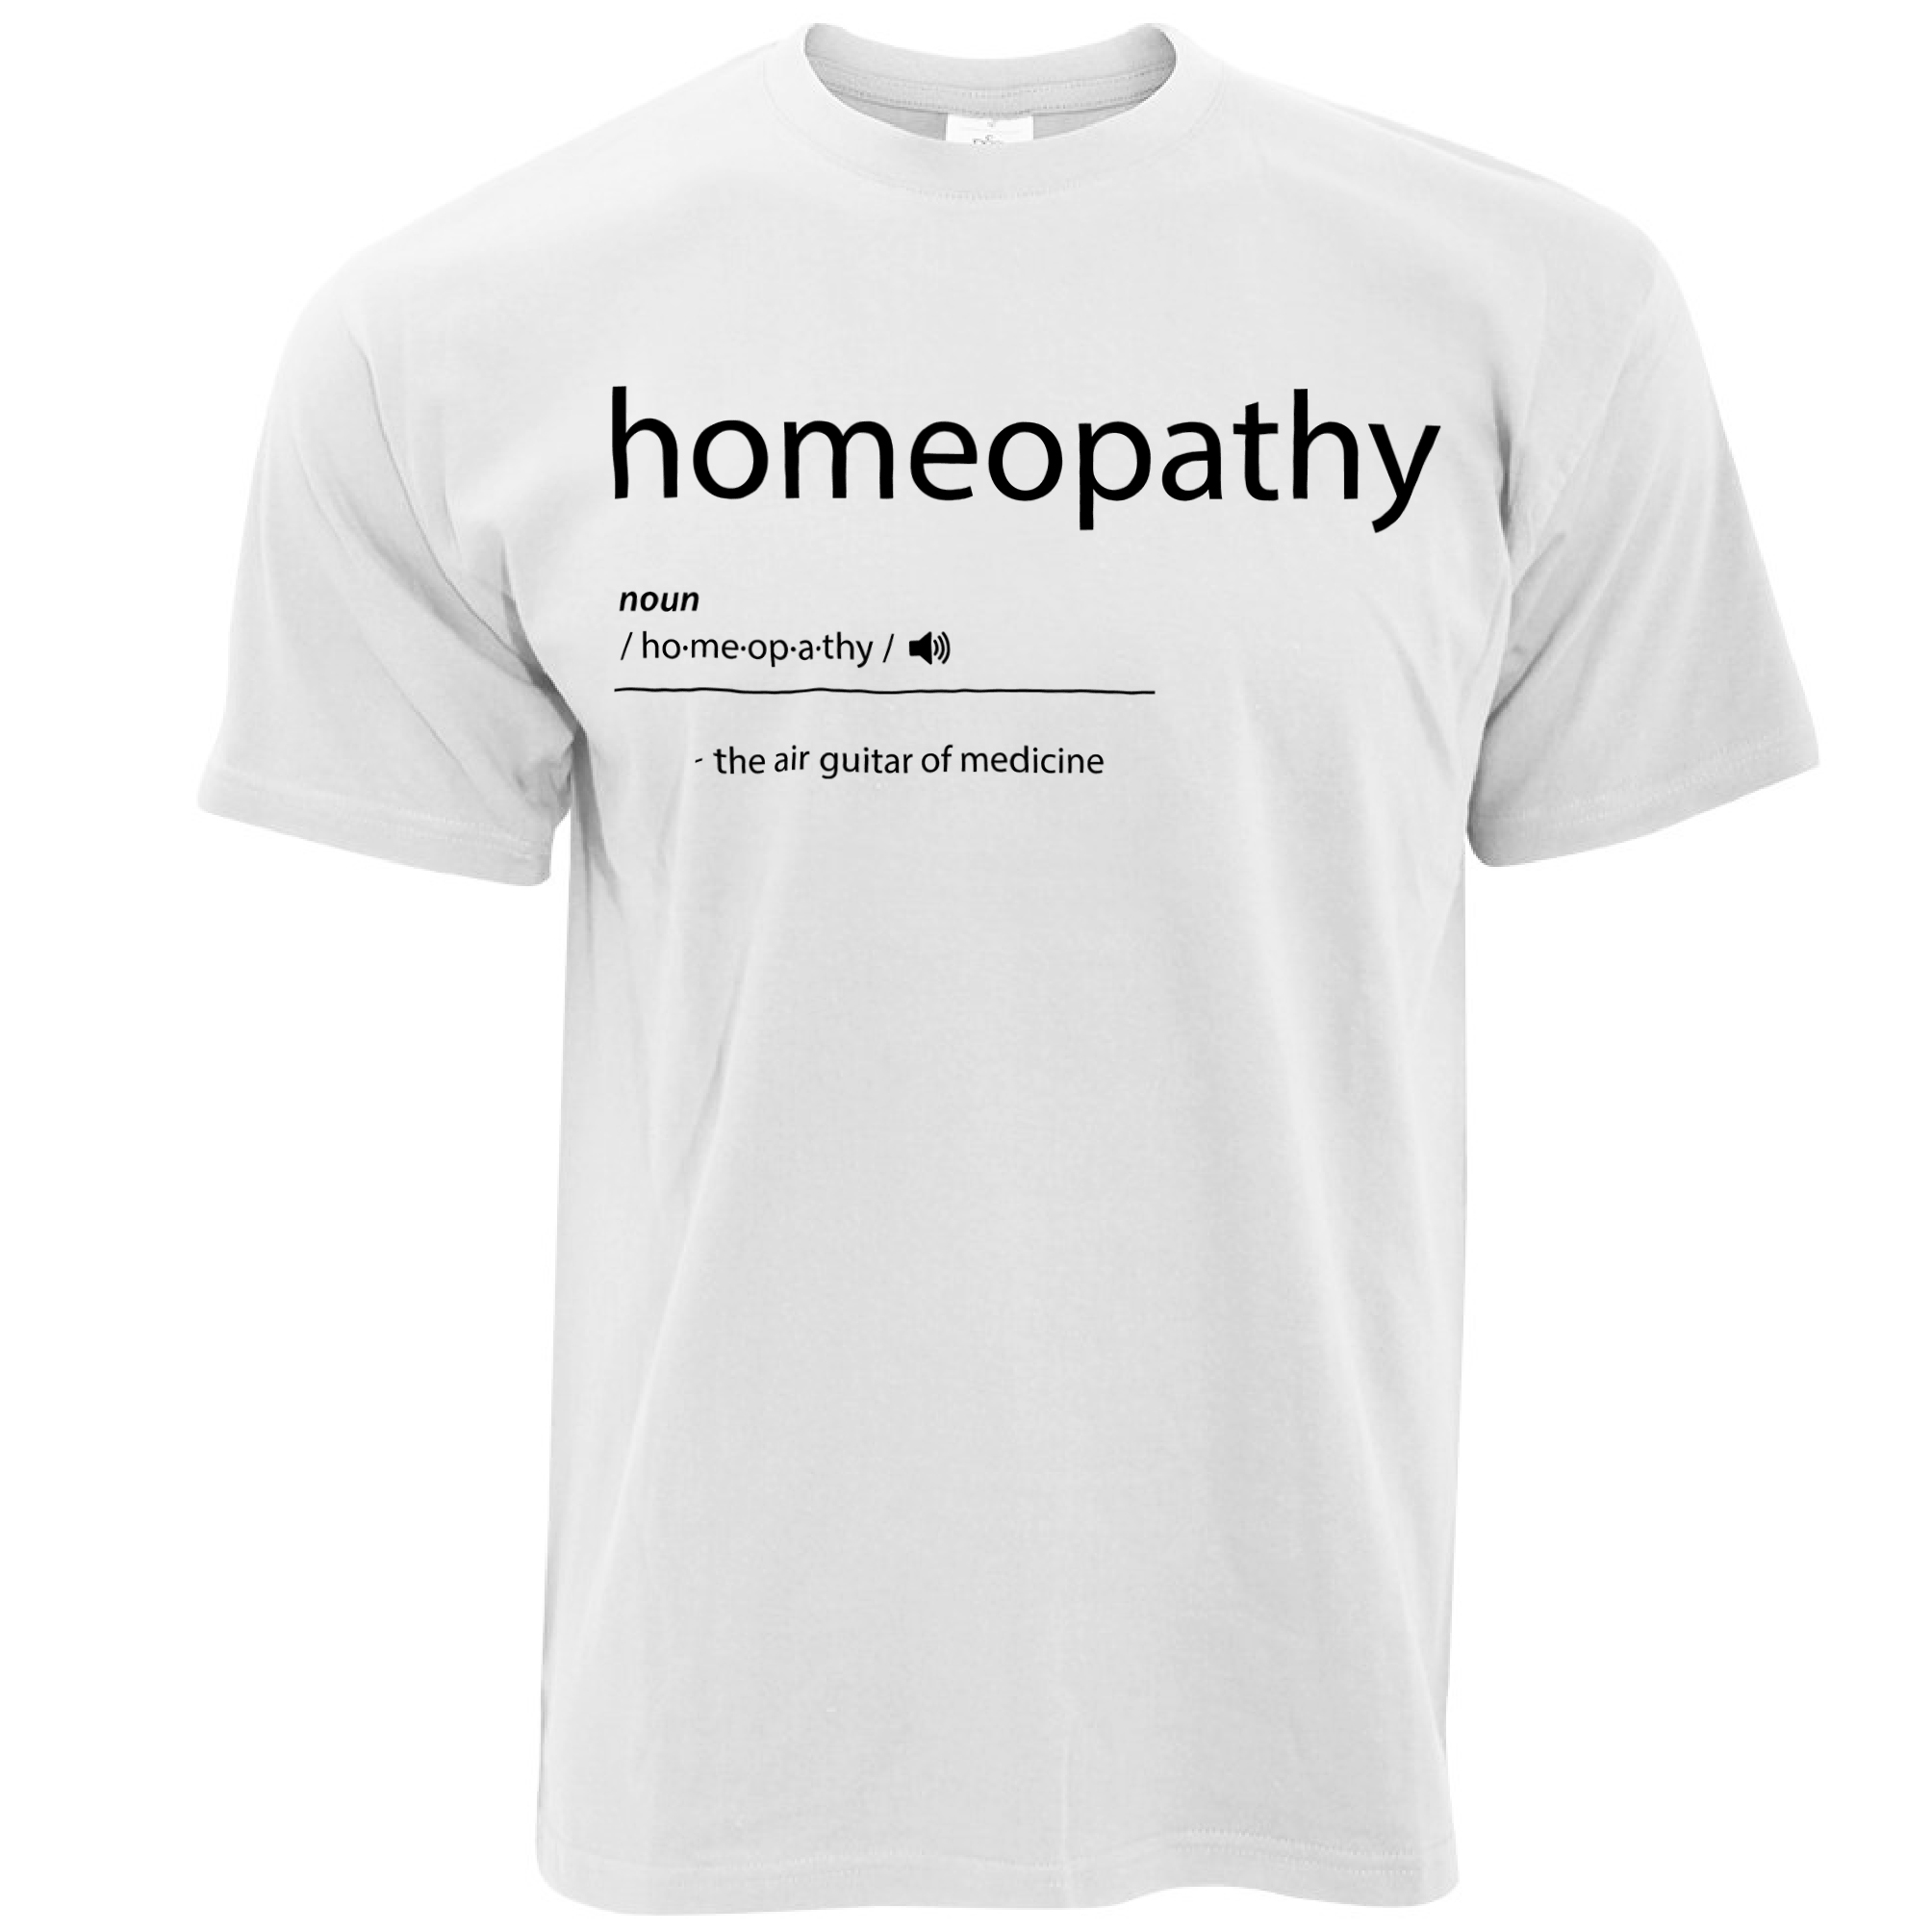 Design your own t shirt mens - Black Friday Design Your Own Shirt Men S Homeopathy The Air Guitar Of Medicine Alternative Quack Crew Neck Graphic Short Sleeve T Shirts